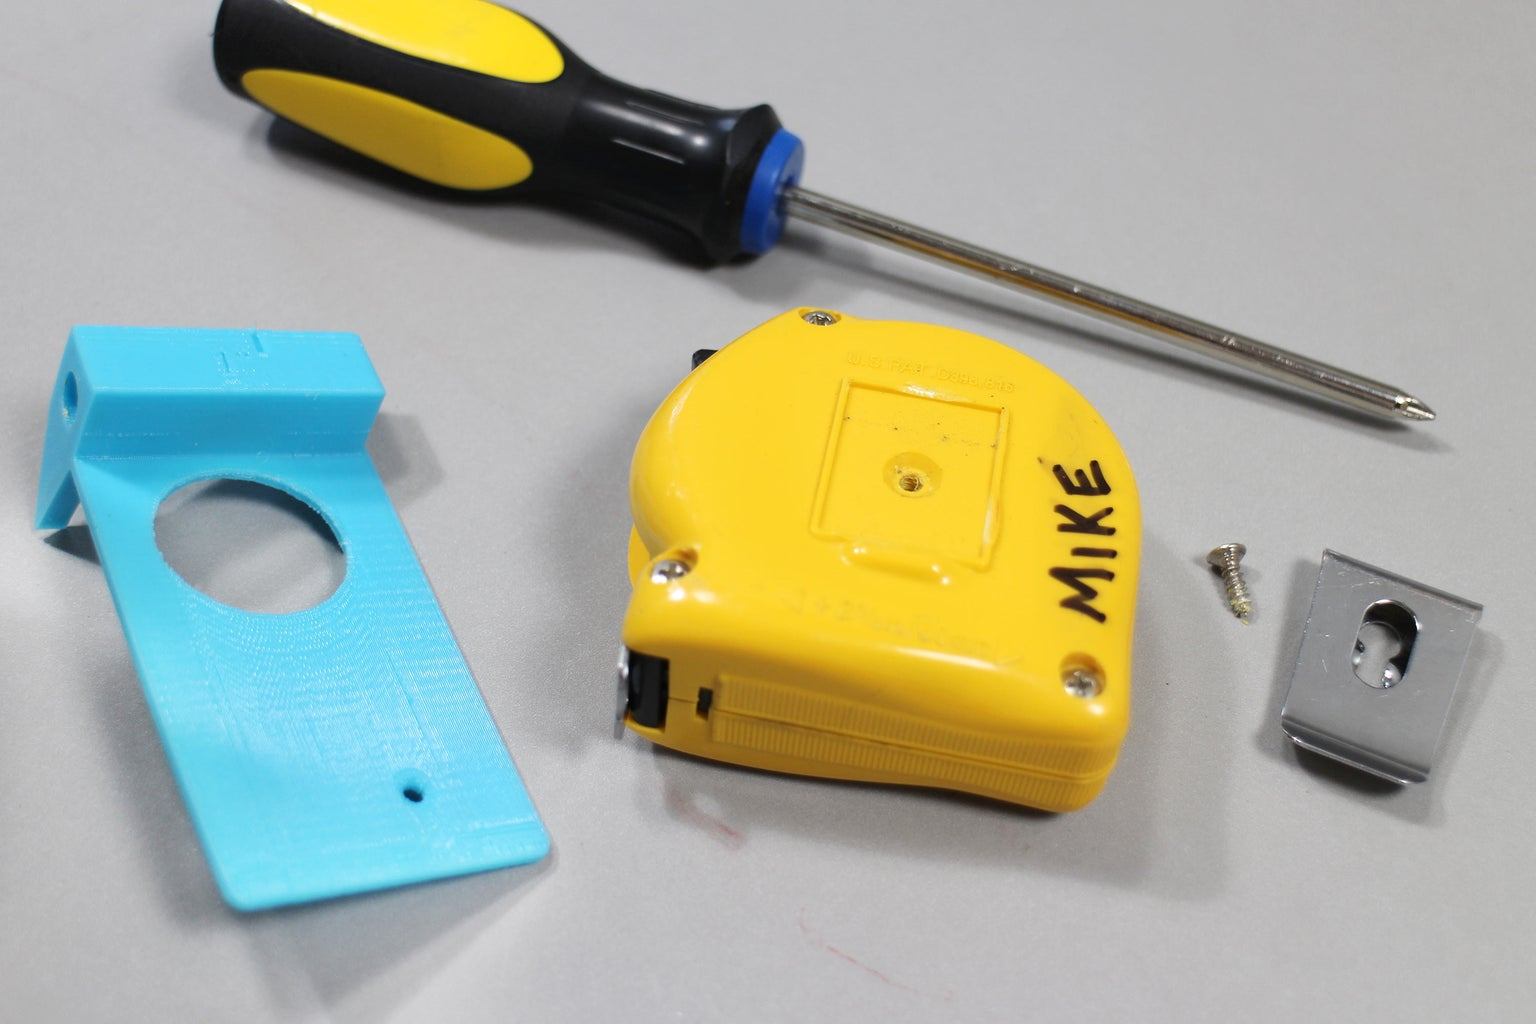 Attach to Tape Measure